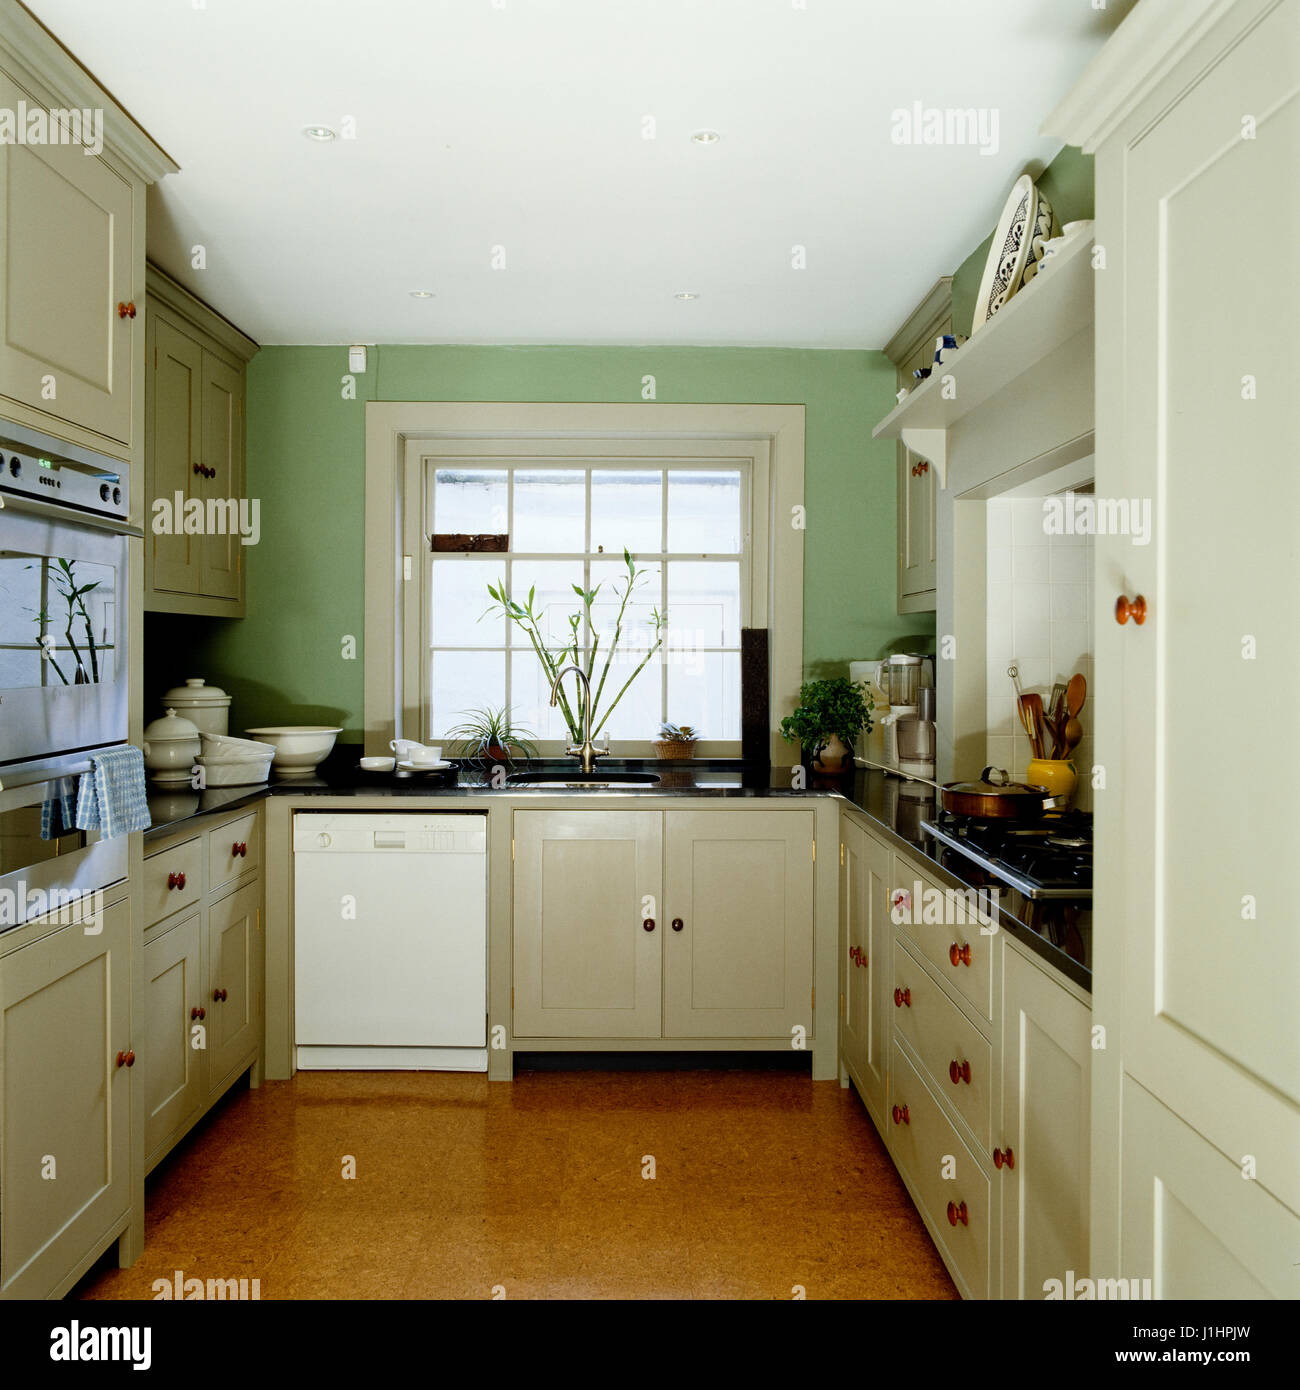 Mfi Kitchen Cabinets: Fitted Kitchens Stock Photos & Fitted Kitchens Stock